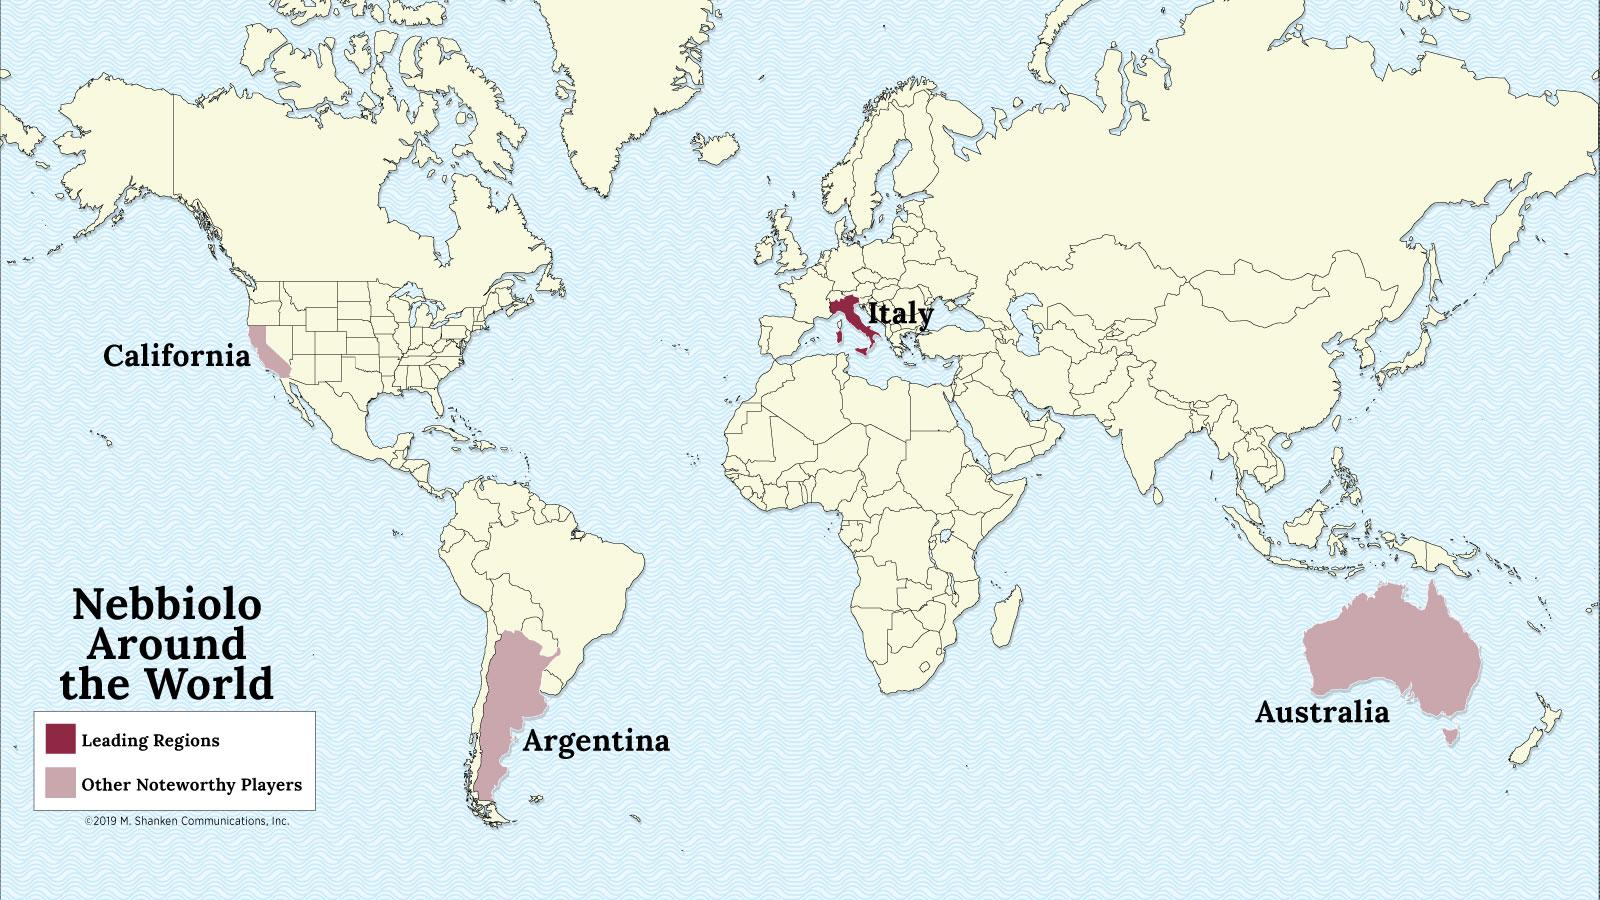 A map of the world with Italy, Australia and Argentina highlighted